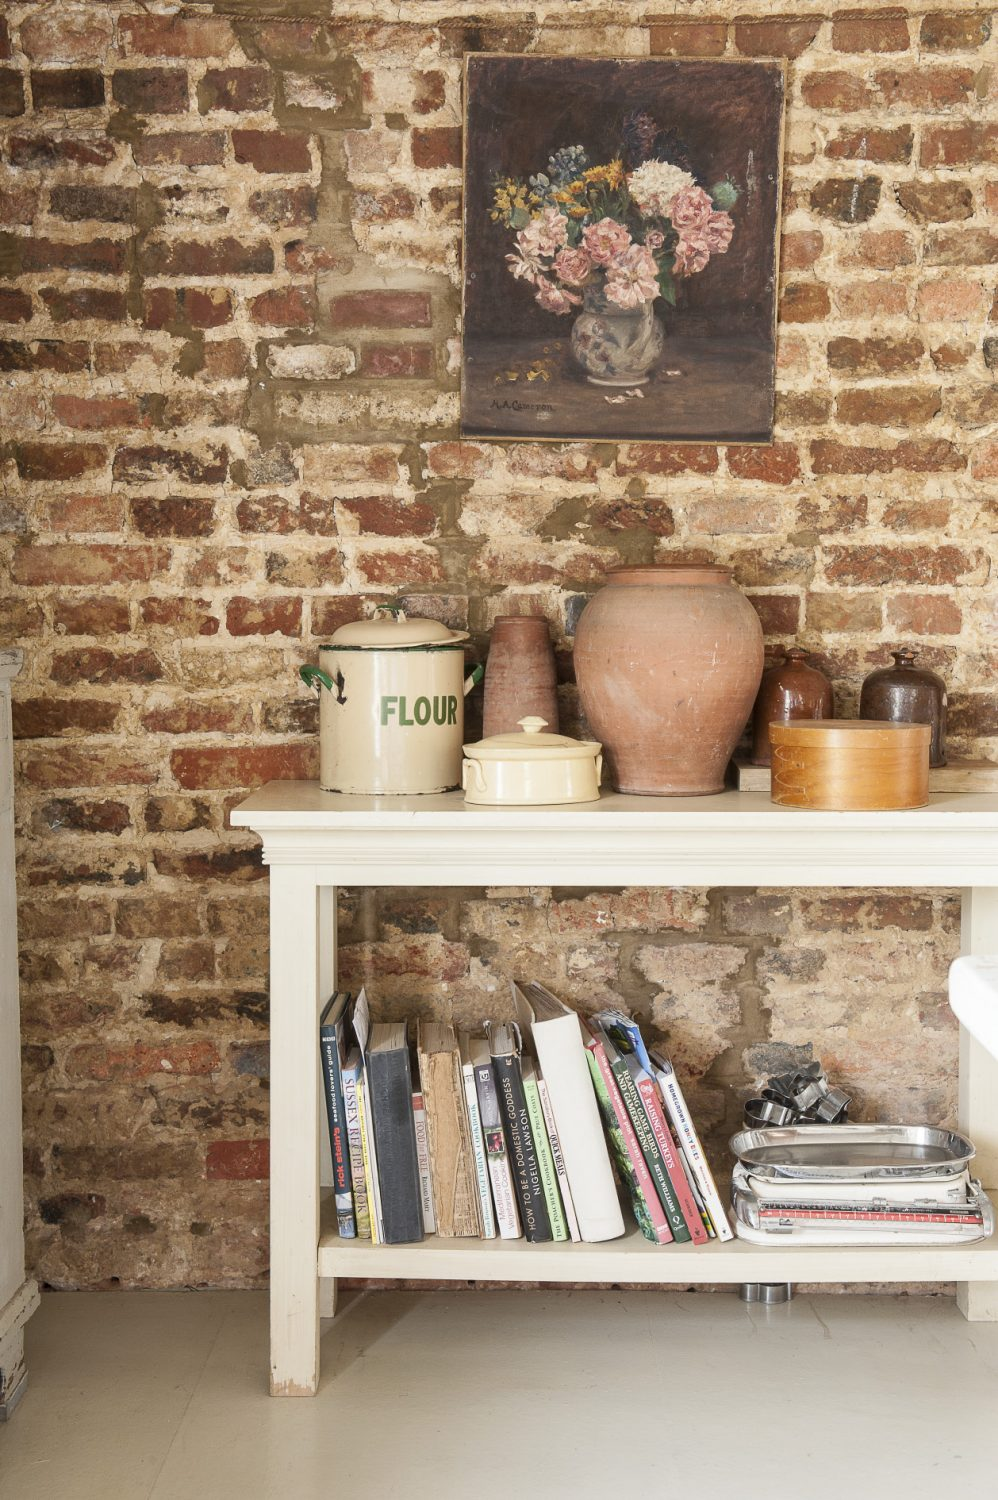 Recipe books and earthenware containers line a unit in the kitchen